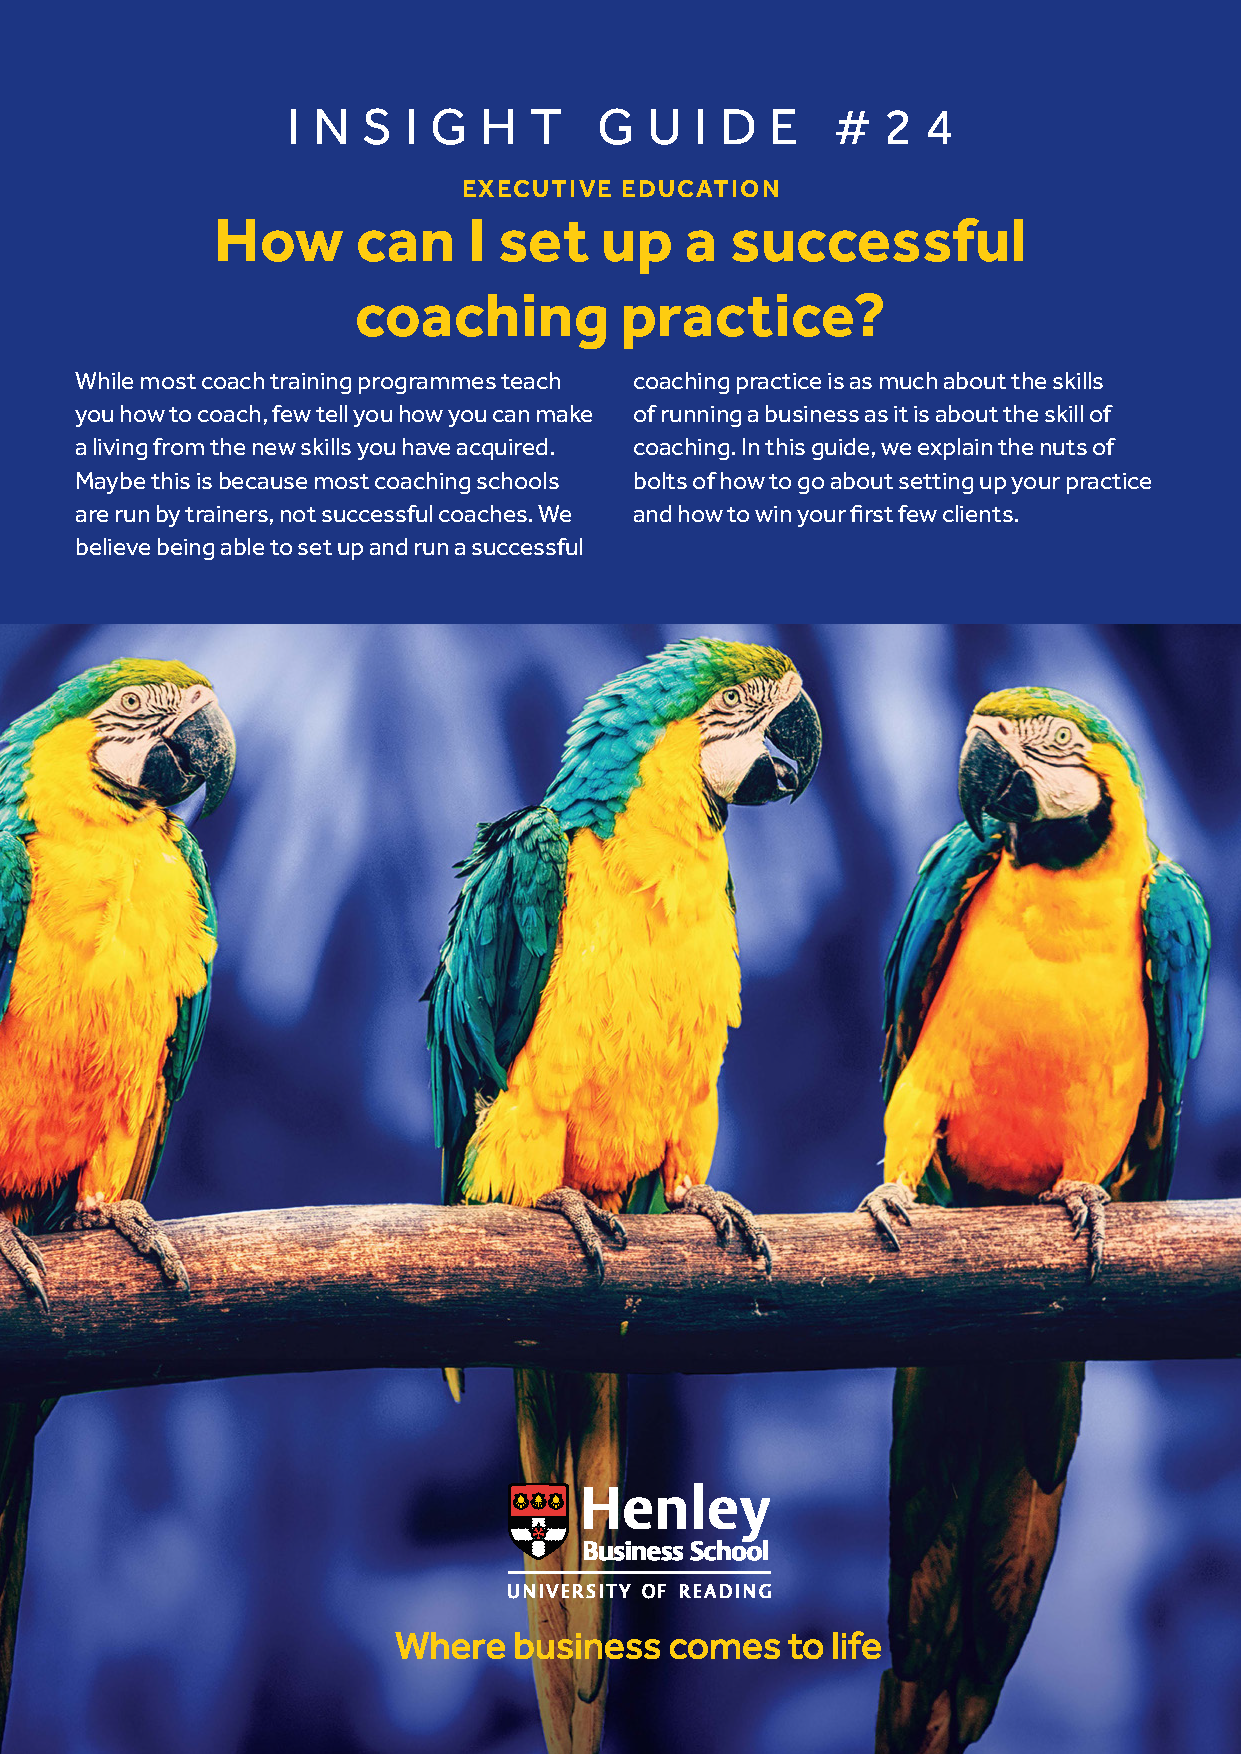 How can I set up a successful coaching practice?